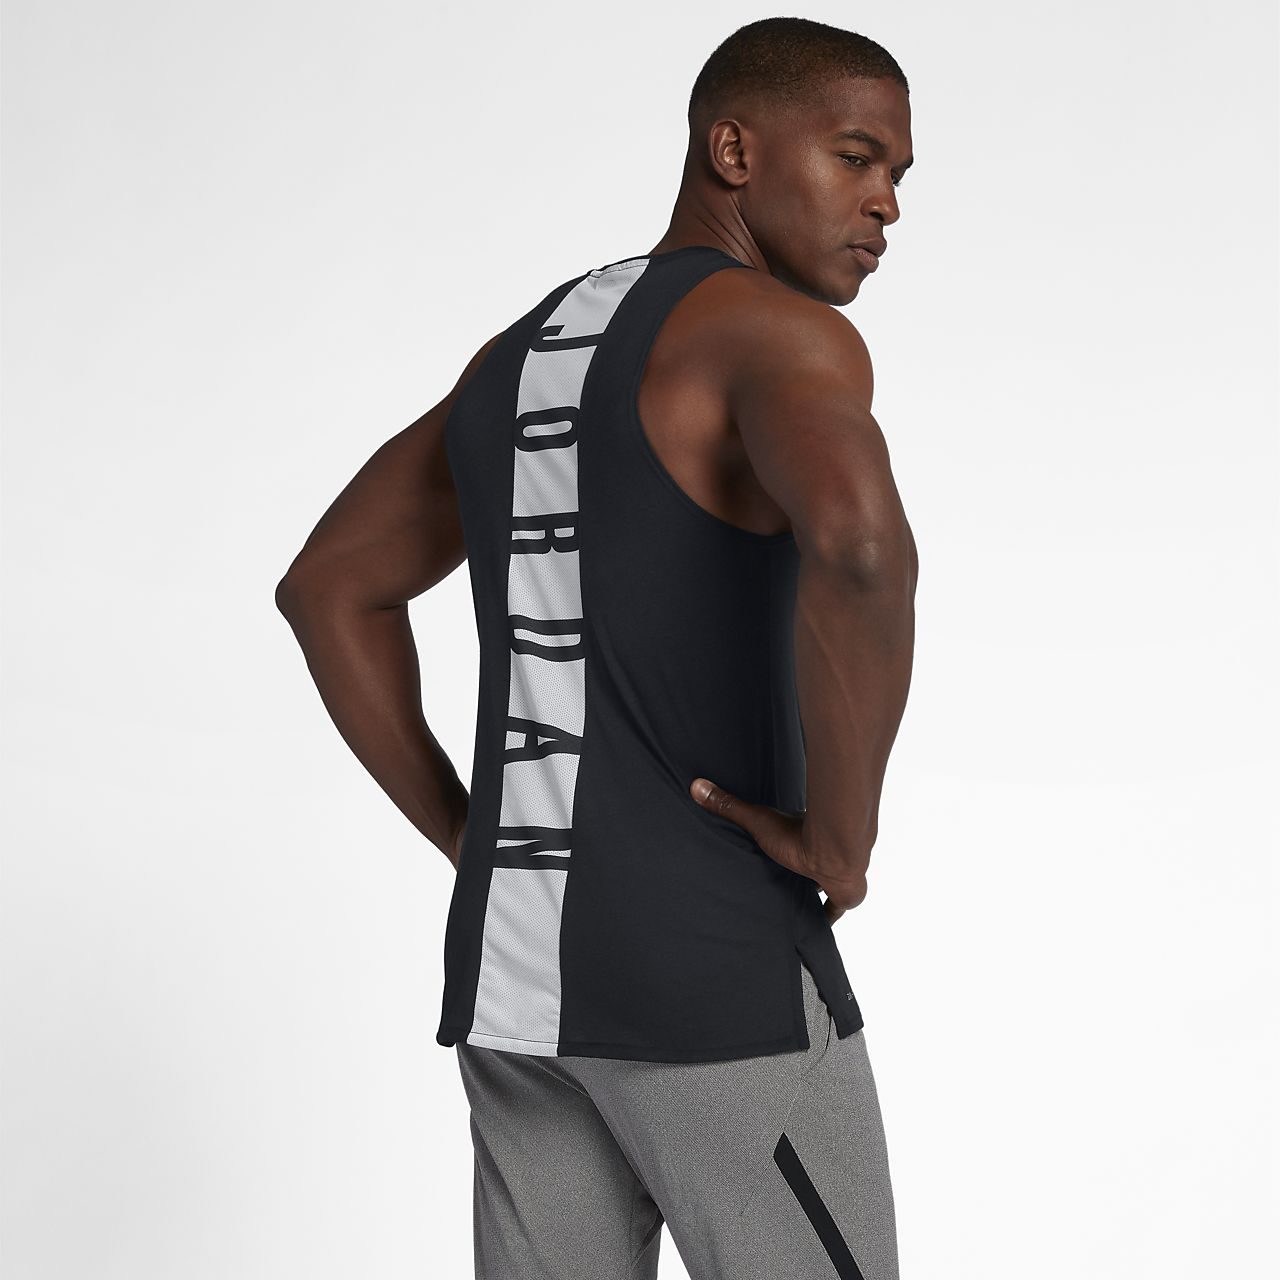 f055496b01d Jordan 23 Alpha Men's Sleeveless Training Top. Nike.com